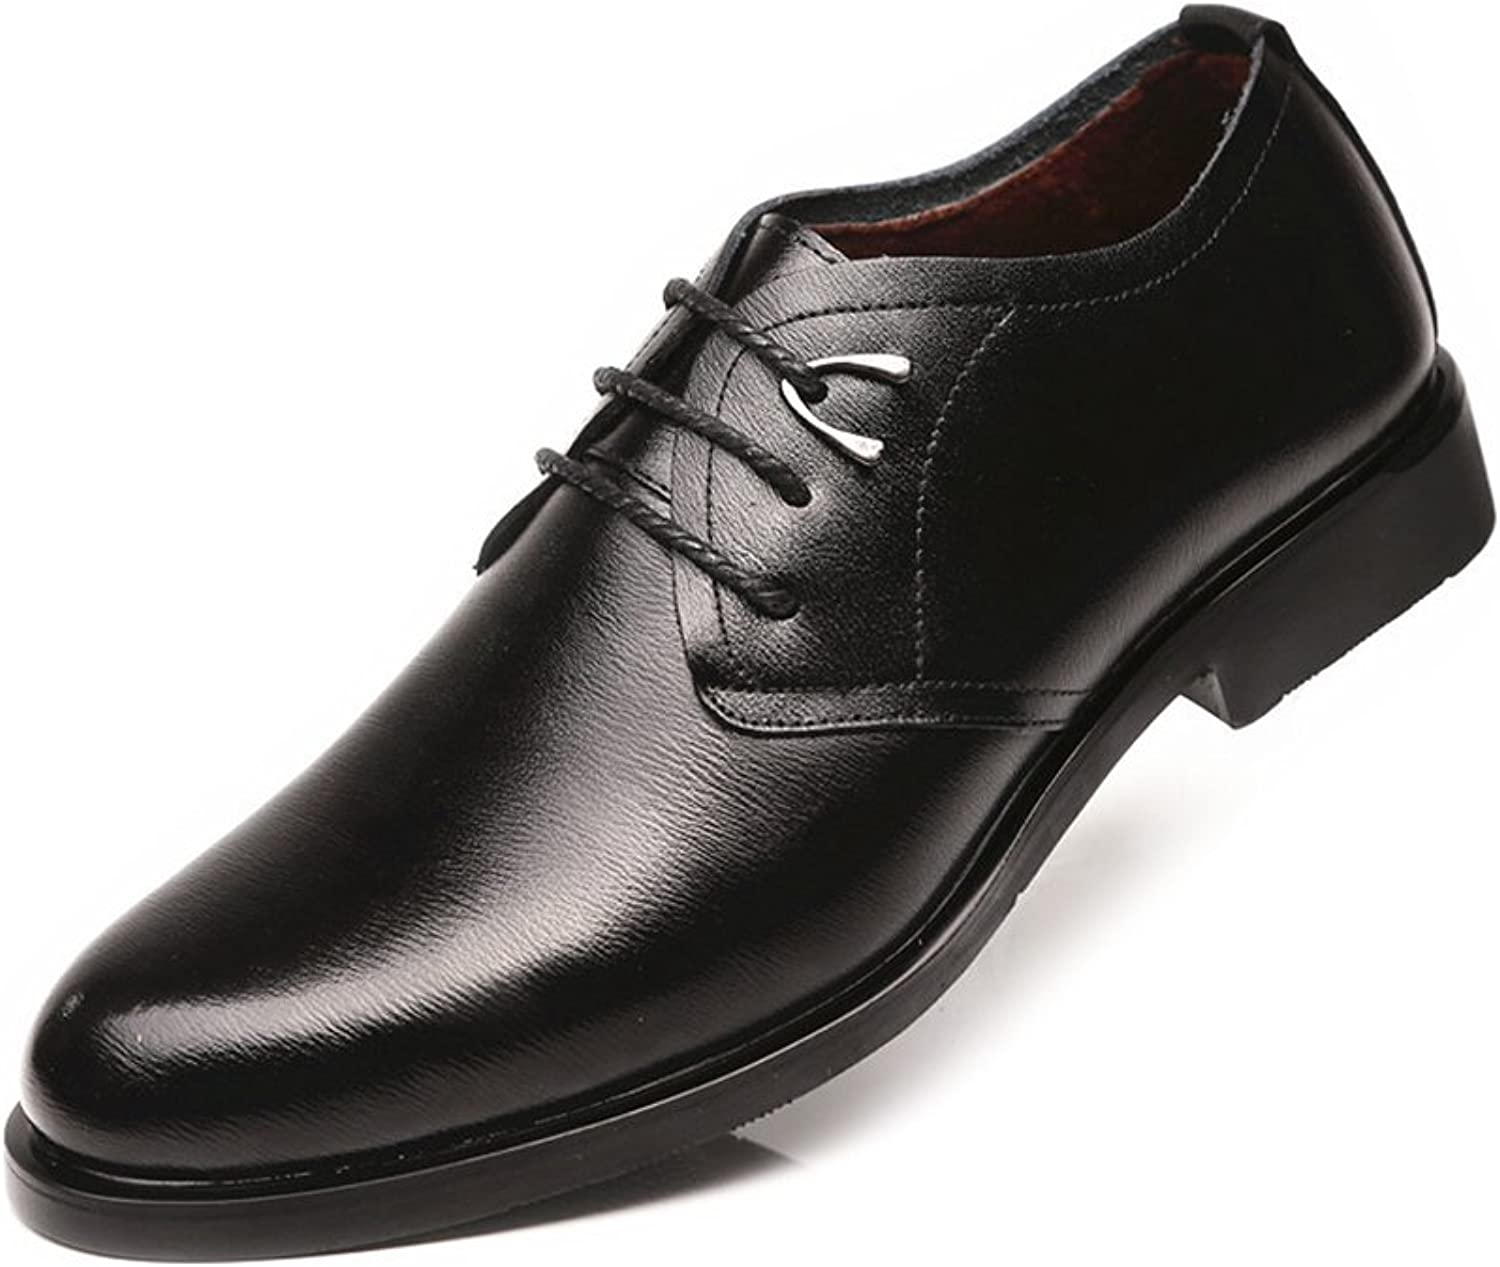 XIANGBAO-Personality Classic Men's Formal Oxfords PU Leather Lace Up Soft Sole Flats Dress shoes